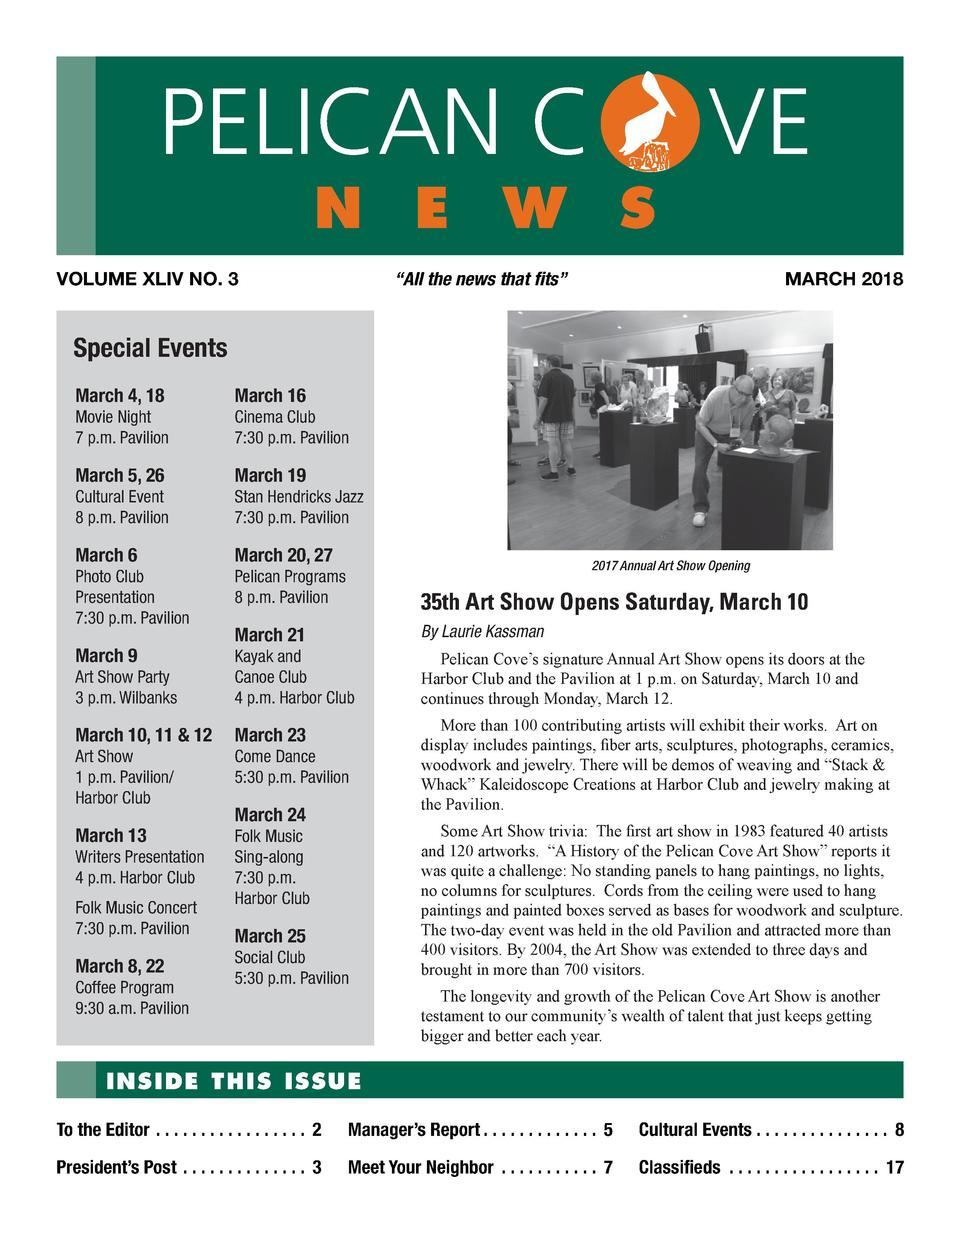 PELICAN C  n e w s  VOLUME XLIV NO. 3  VE MARCH 2018     All the news that fits     Special Events March 4, 18  March 16  ...